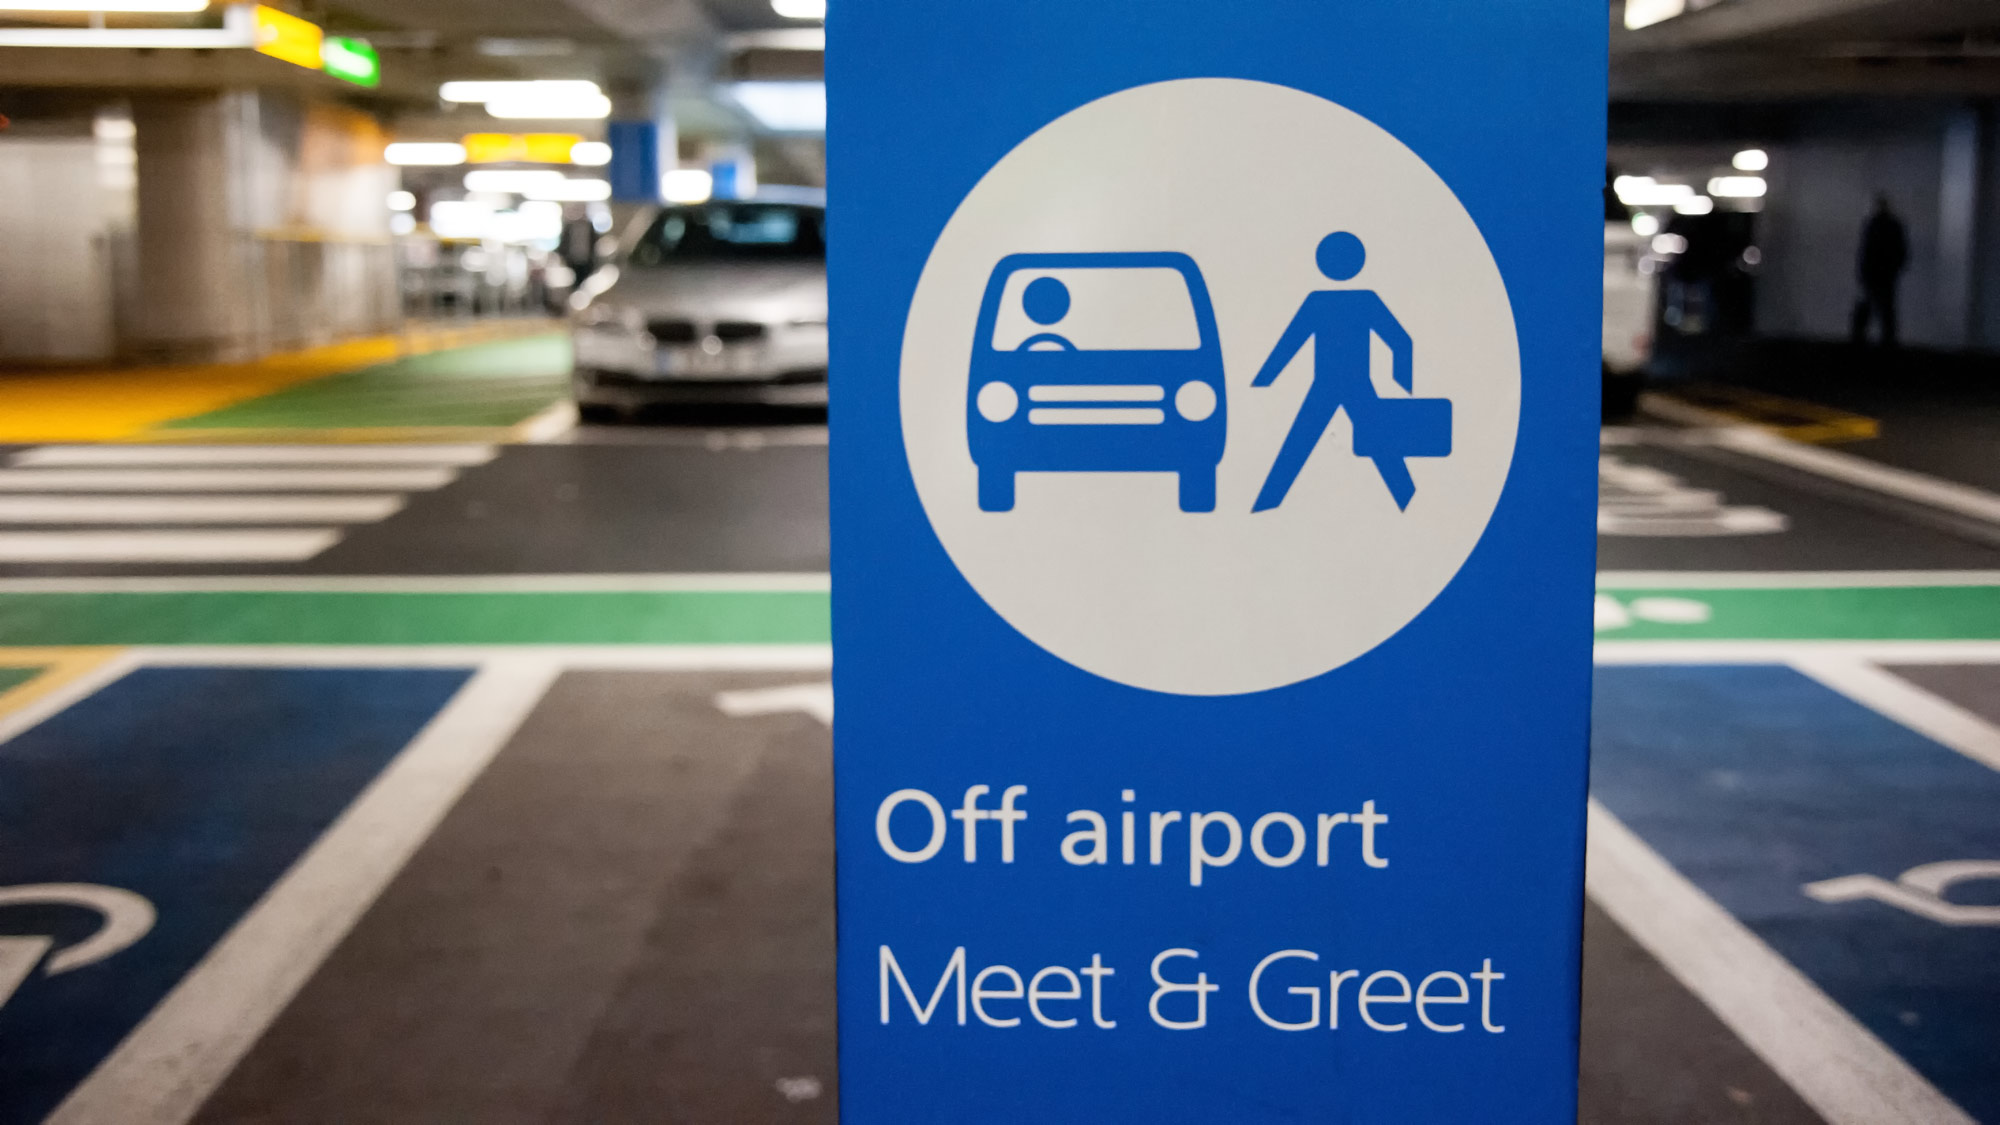 Heathrow meet and greet heathrow airport parking i love clear signposted area kristyandbryce Image collections